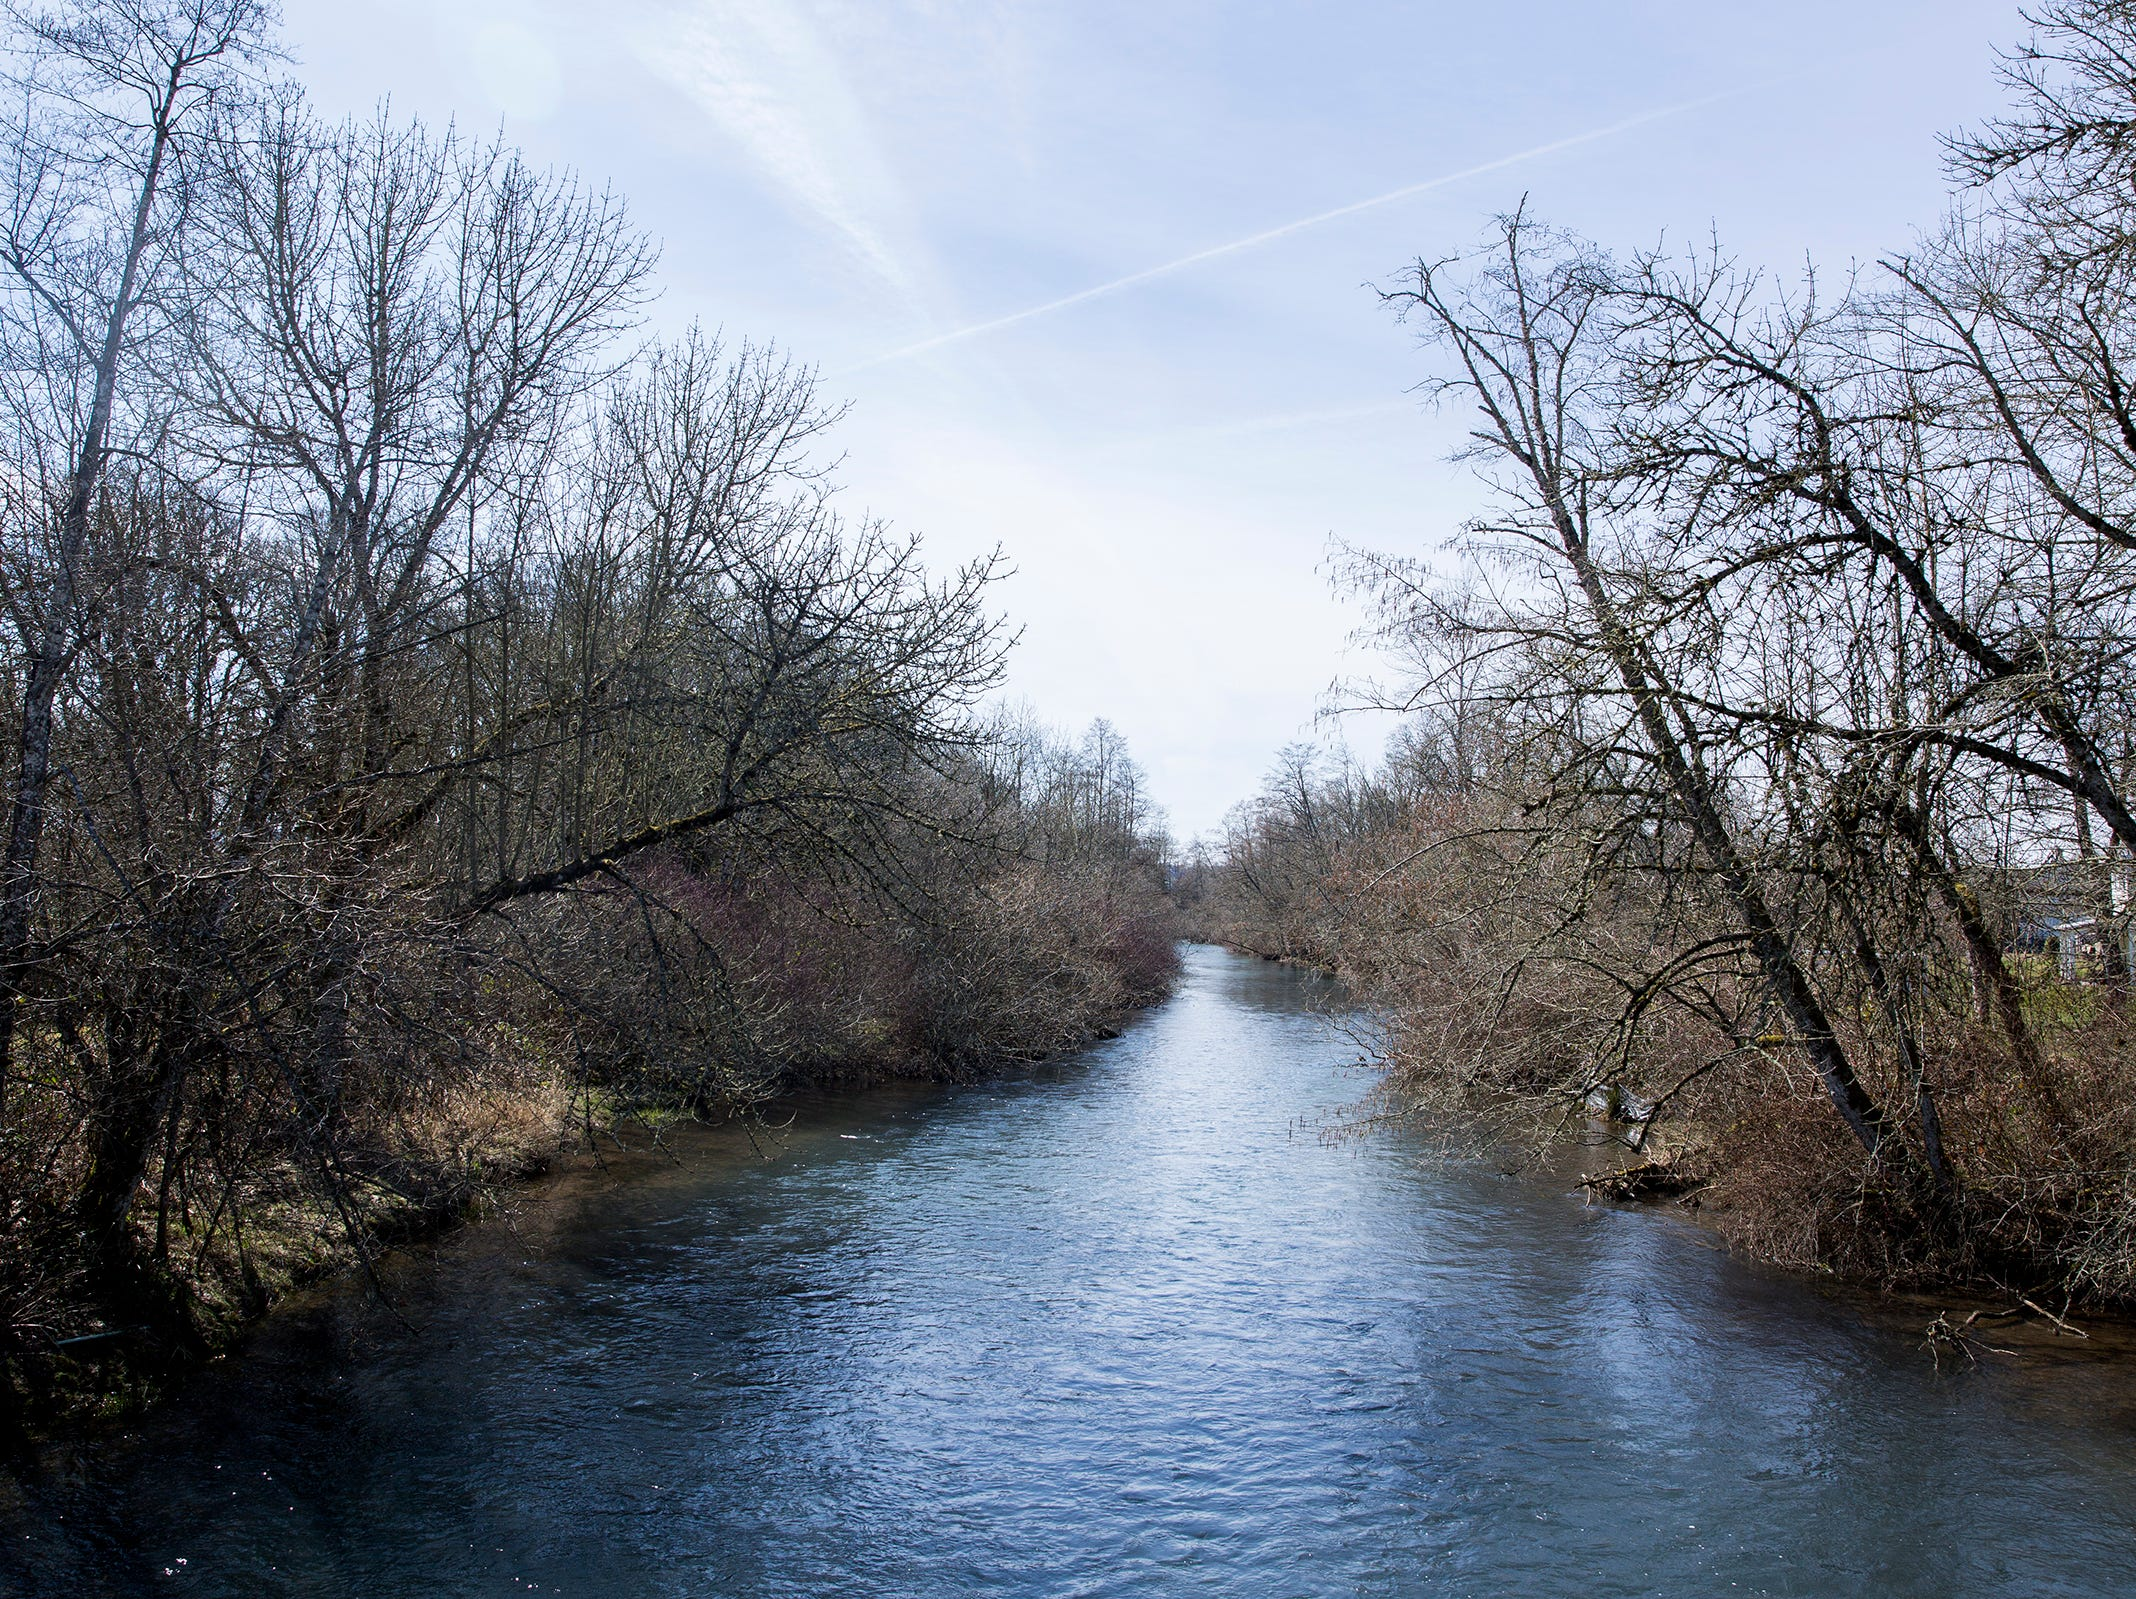 Mill Creek, a stop on the new Turner nature trail, near Turner Elementary School in Turner on March 14, 2019.